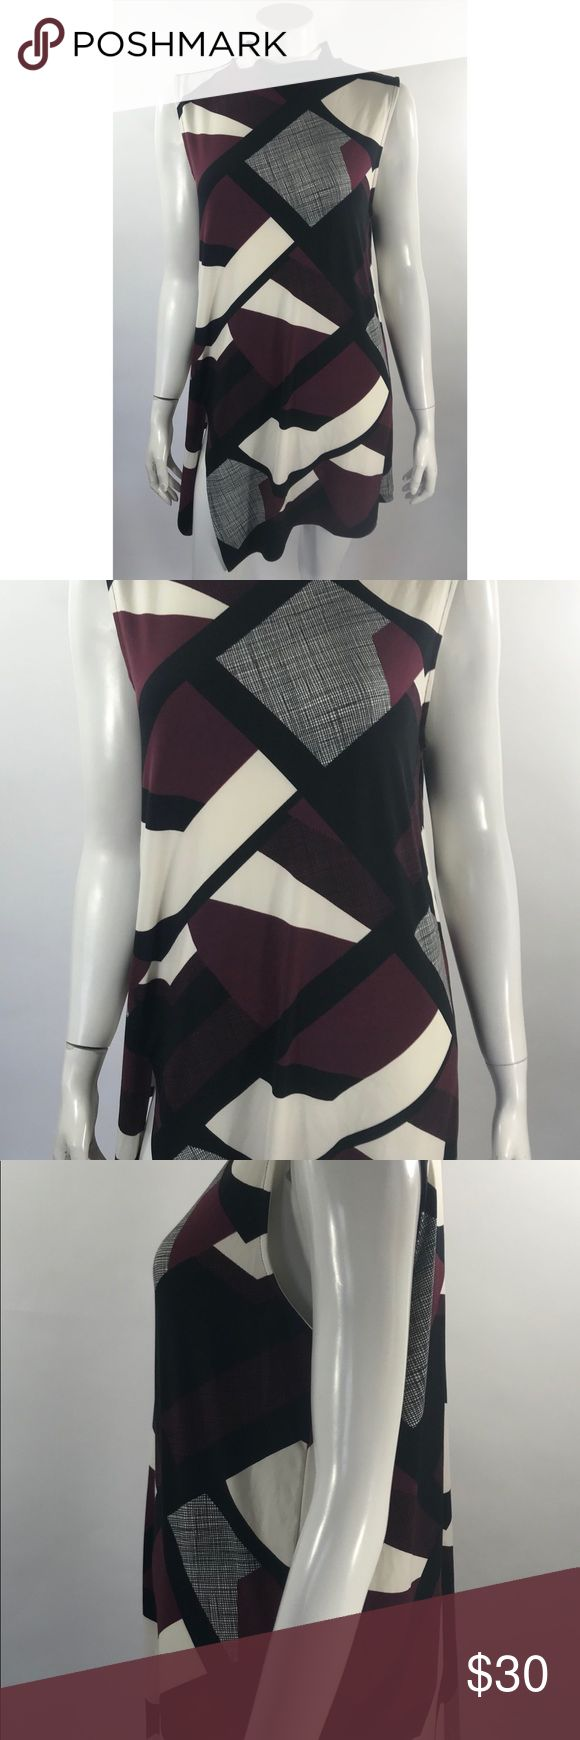 Alfani Sleeveless Tunic Top XL Maroon Black White Alfani Womens Sleeveless Tunic Top XL Maroon Black White Geometric Stretch NEW. Measurements: (in inches) Underarm to underarm: 20 Length: 35  New with tags. Alfani Tops Tunics